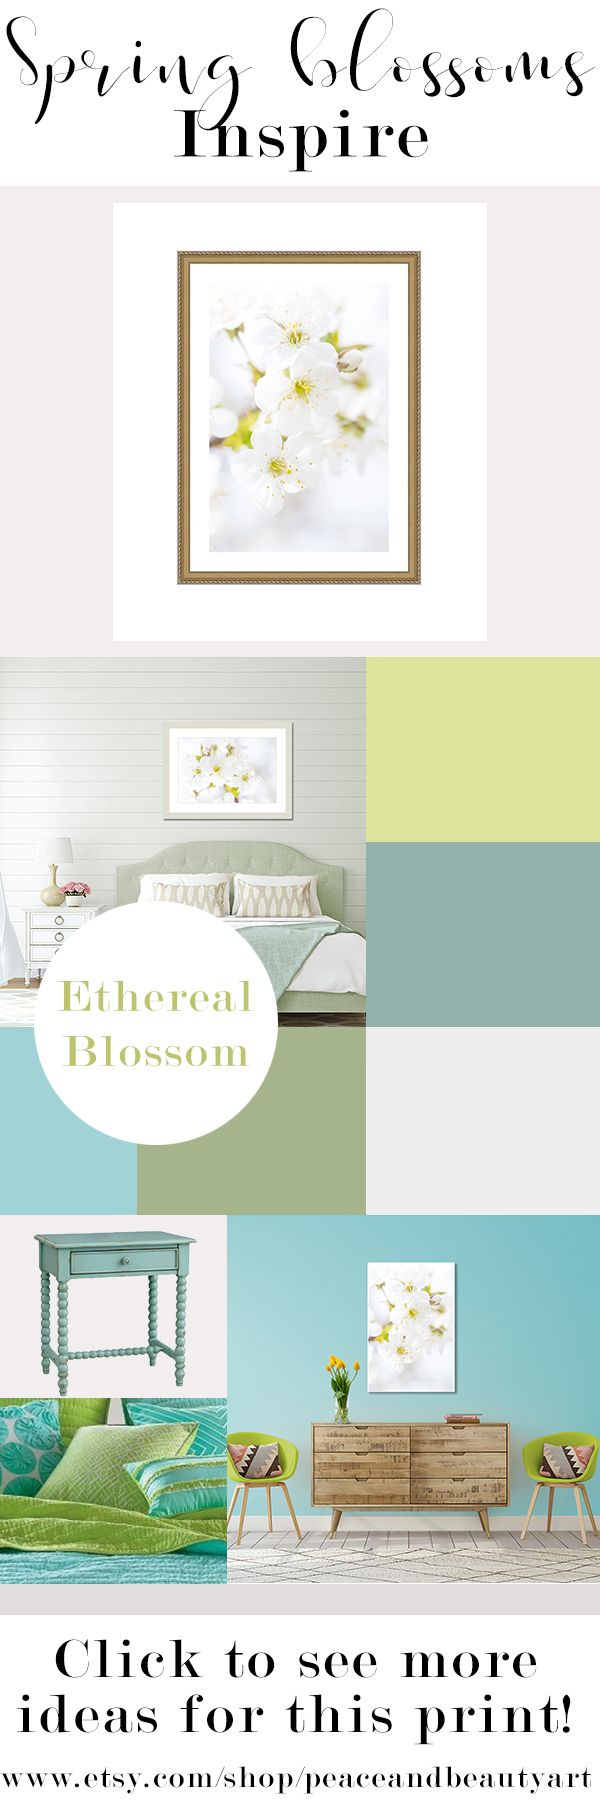 """Bring spring flowers into your master bedroom, bathroom or living room all year round with this crisp white and yellow, cherry blossom tree branch, minimalist, still life, wall art. This floral print entitled, """"Ethereal Blossoms"""", will look great with cottage chic, boho, or traditional decor or any colorful space needing the grounding of neutral art. Best of all, this piece is versatile and can be hung vertically or horizontally.  White, green, yellow, aqua color palette"""